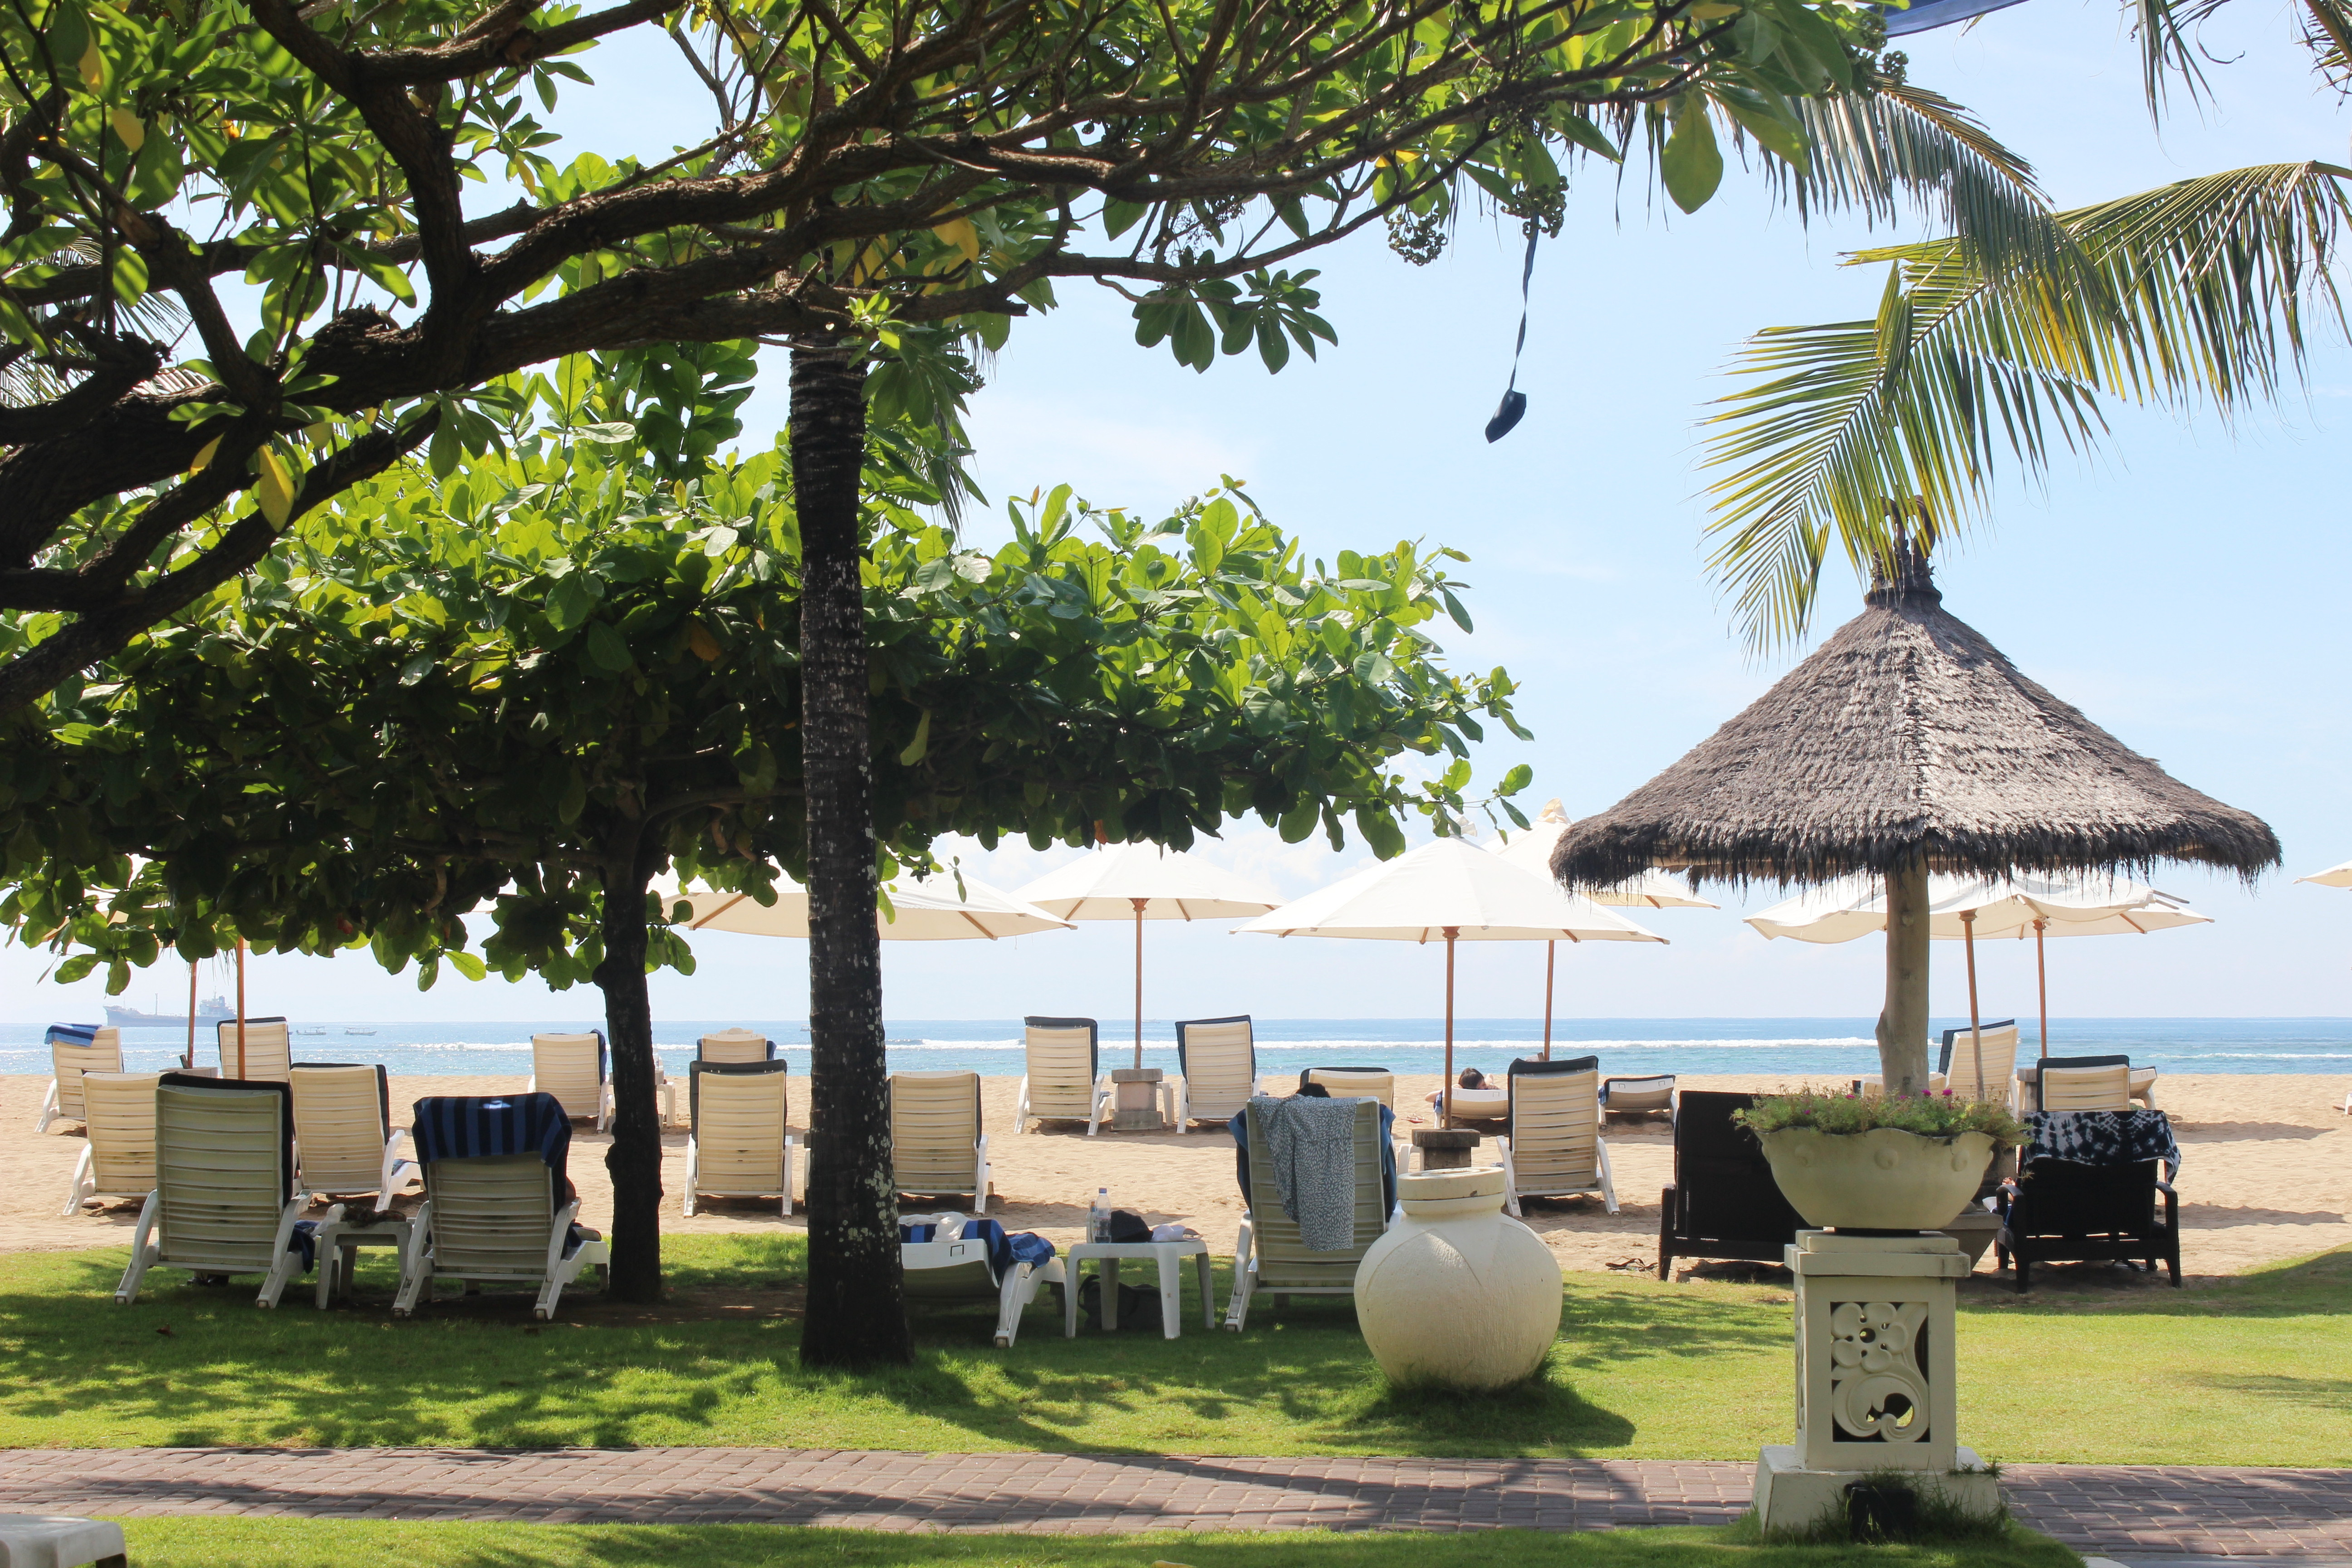 Place to stay in Bali Nusa Dua, Trip to bali